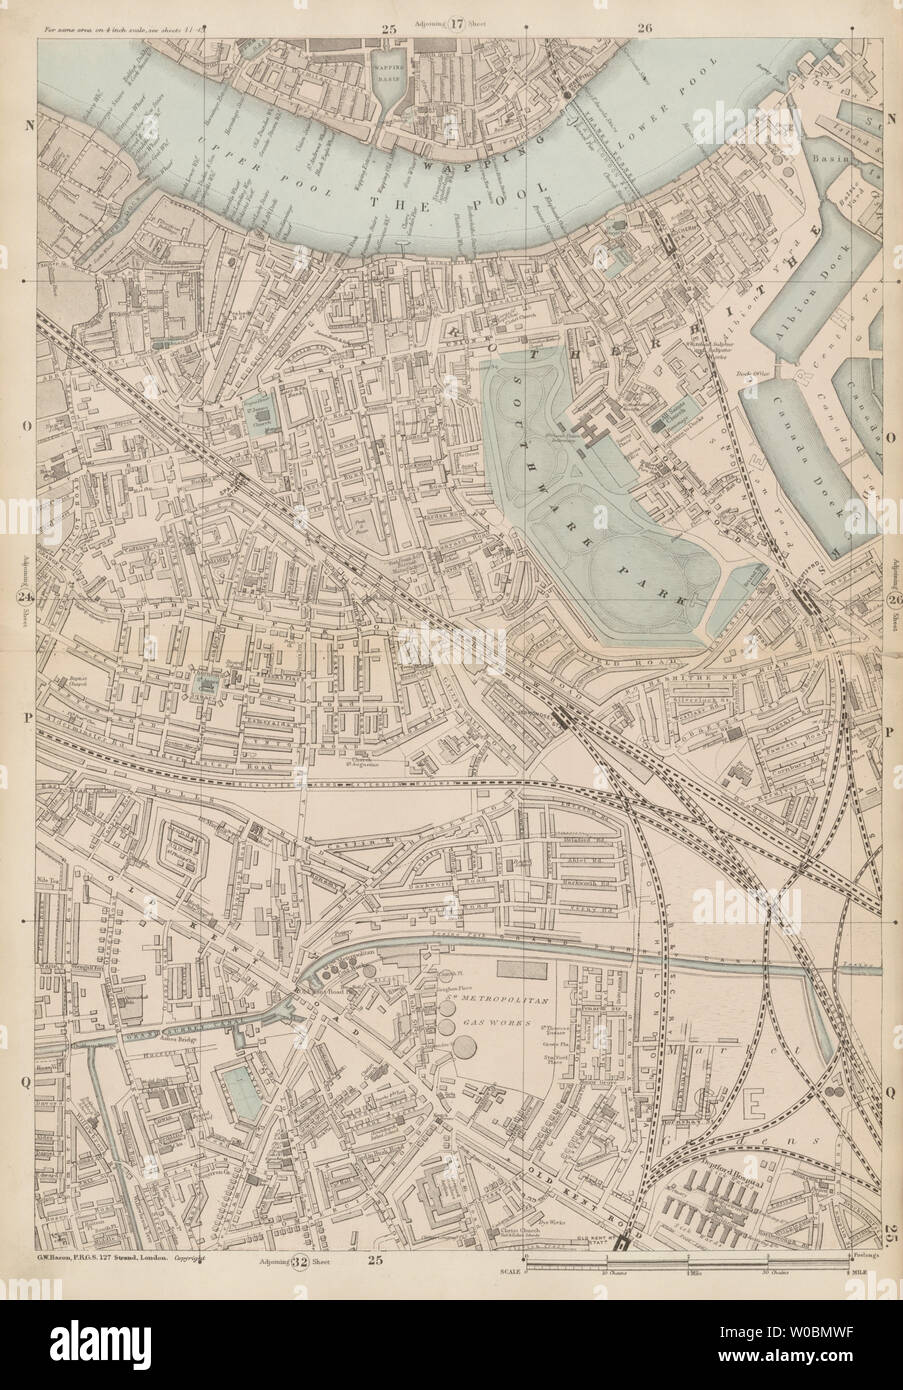 LONDON Bermondsey Peckham Rotherhithe Wapping Surrey Docks 1933 old map